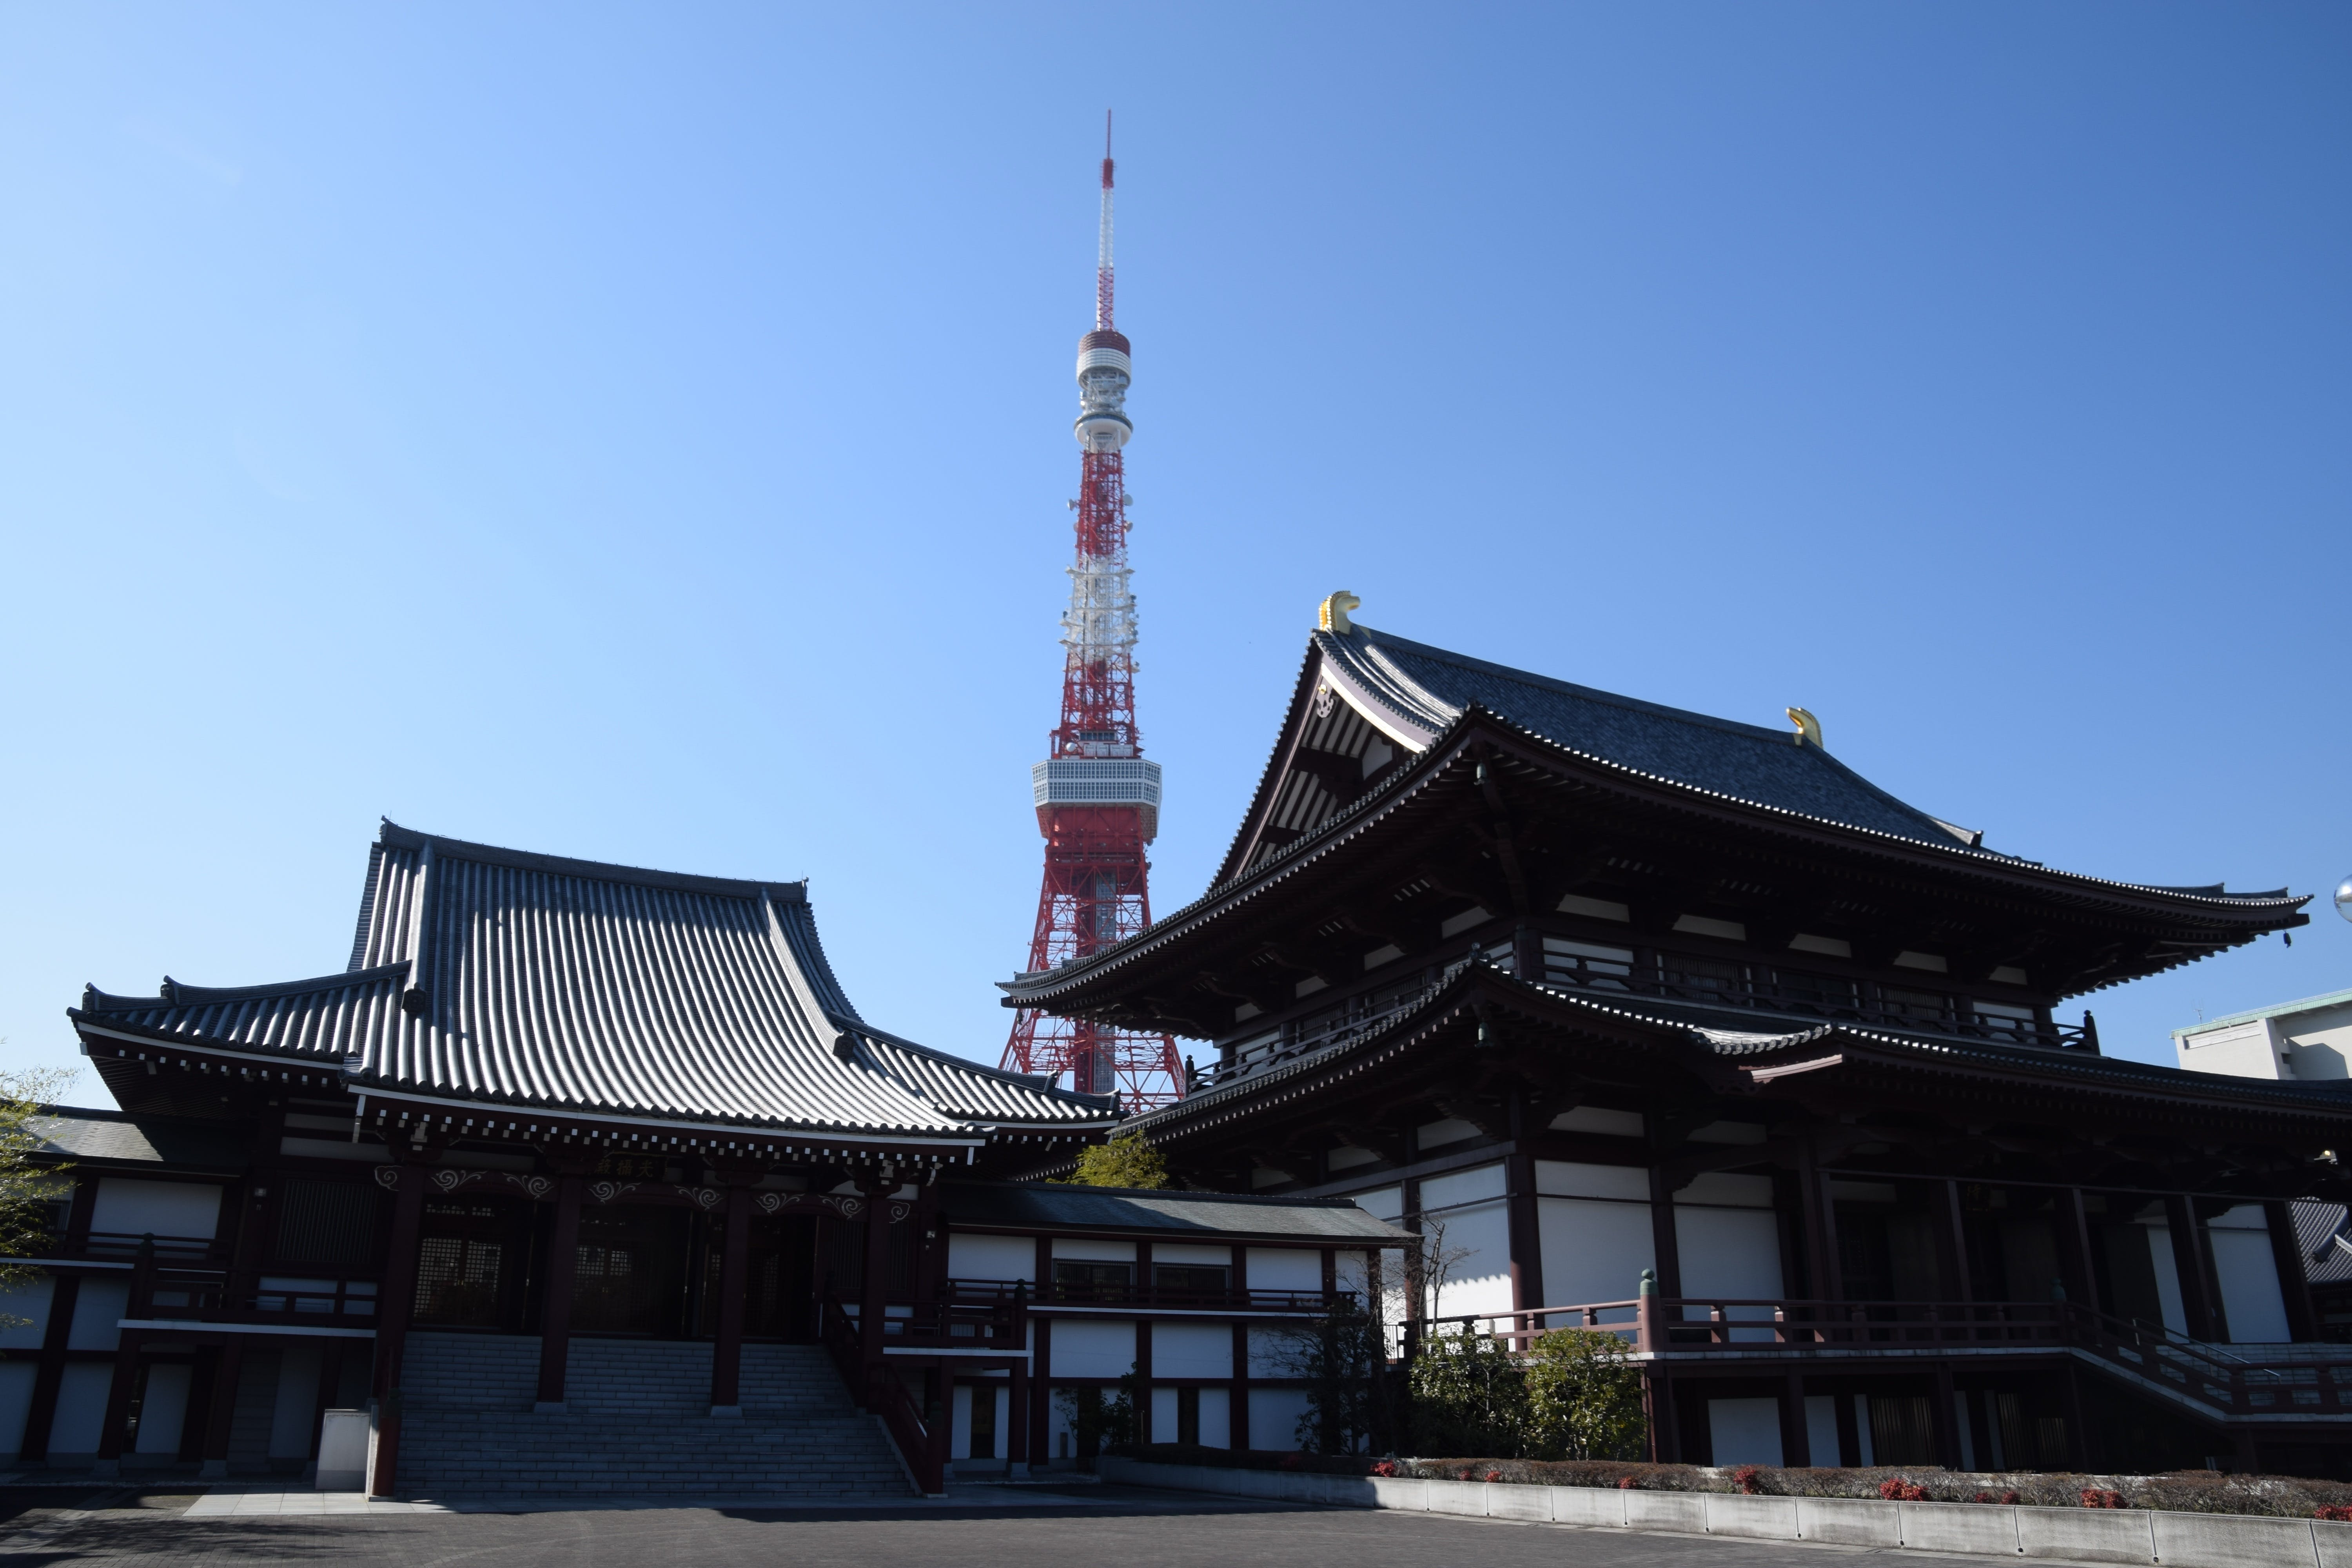 Tokyo Tower Behind Black and White Dojo Building during Daytime